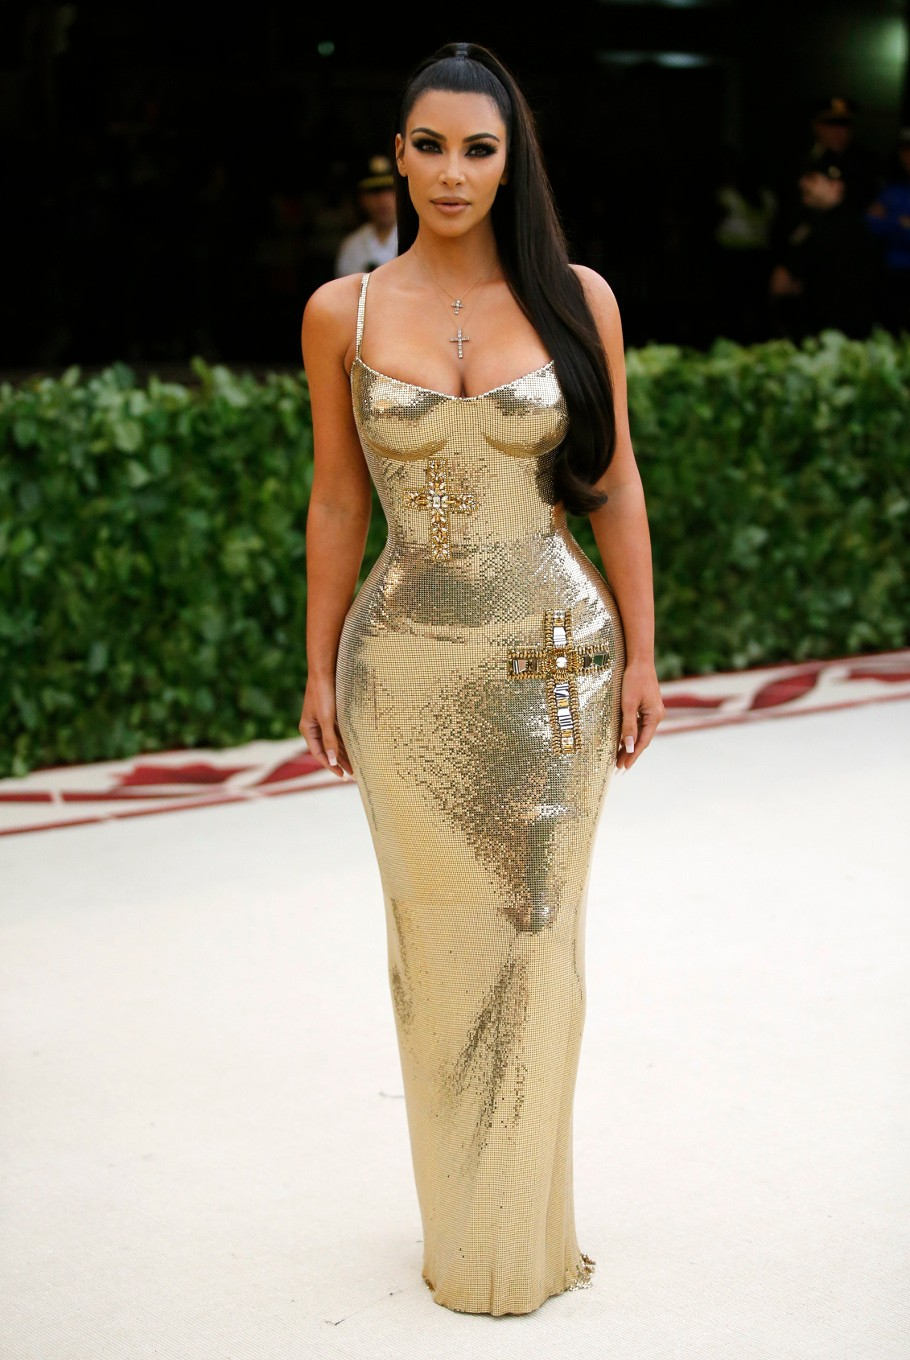 Kim Kardashian arrives at the Metropolitan Museum of Art Costume Institute Gala (Met Gala) to celebrate the opening of 'Heavenly Bodies: Fashion and the Catholic Imagination' in the Manhattan borough of New York, U.S., May 7, 2018.